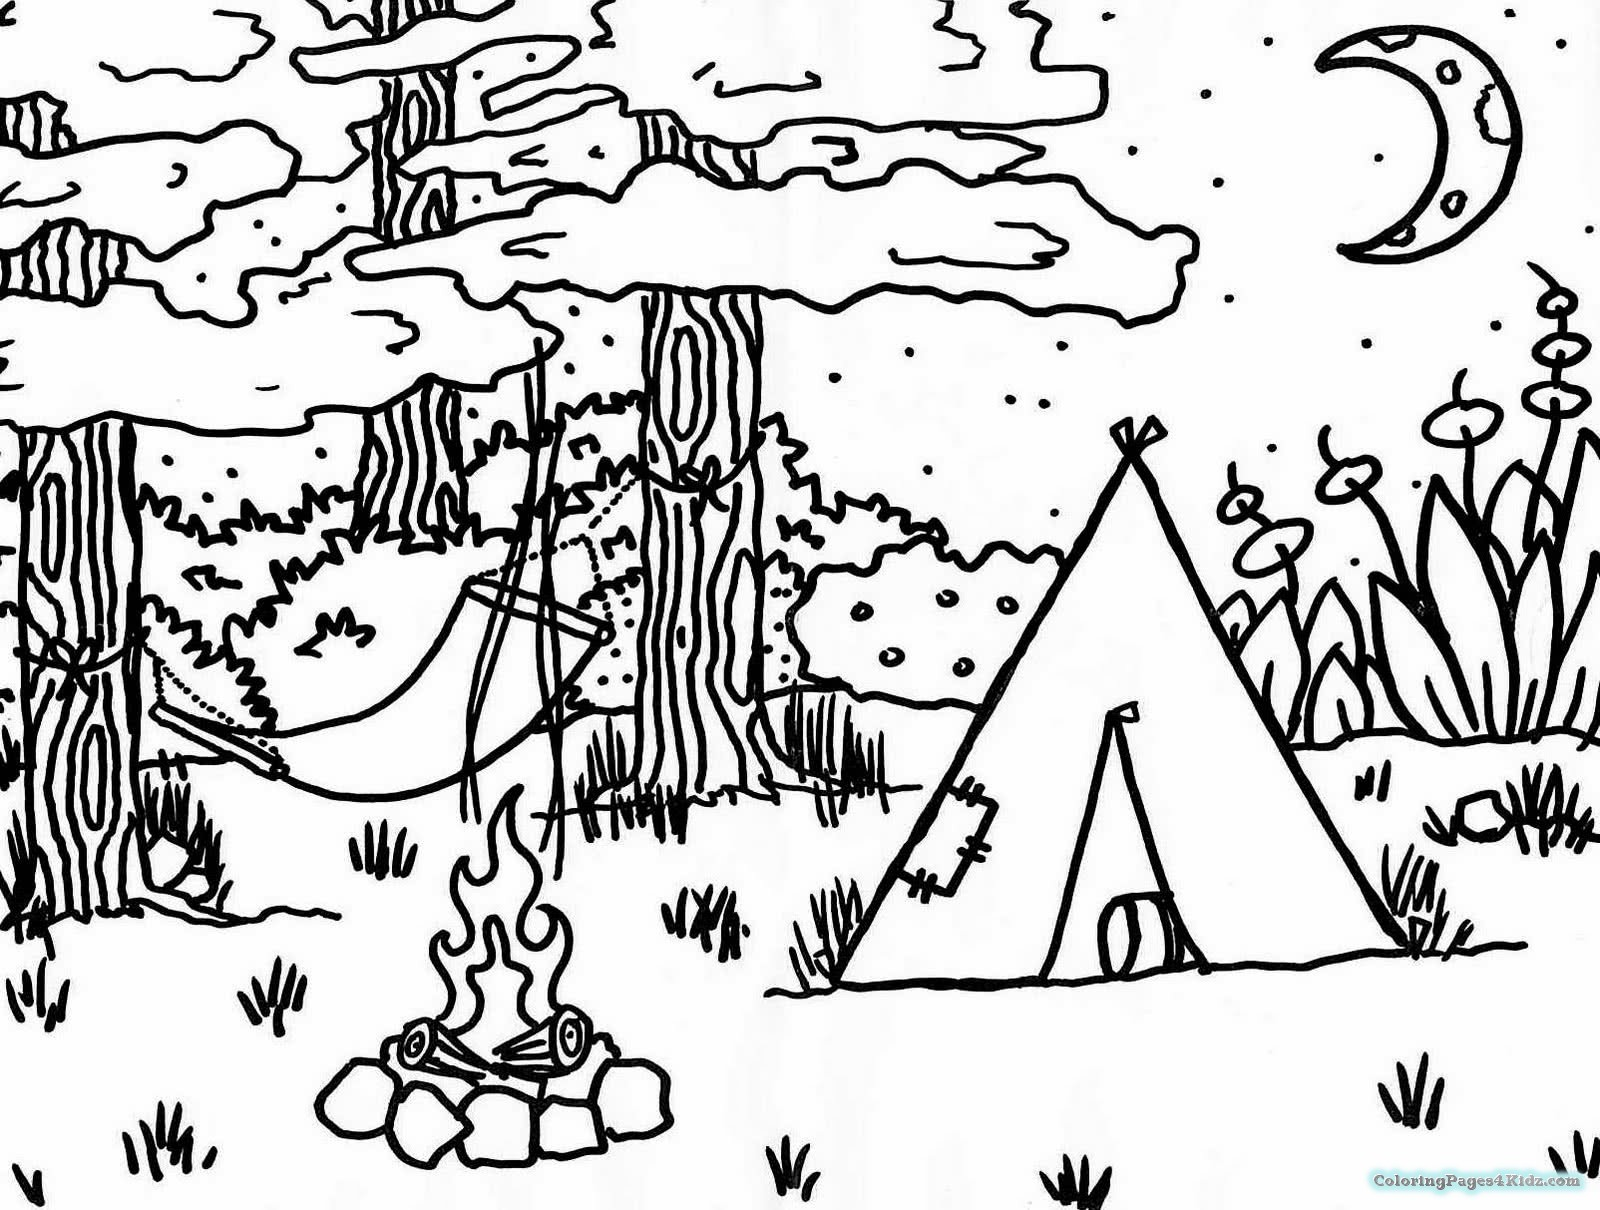 1600x1210 Free Preschool Camping Theme Coloring Pages Coloring Pages For Kids